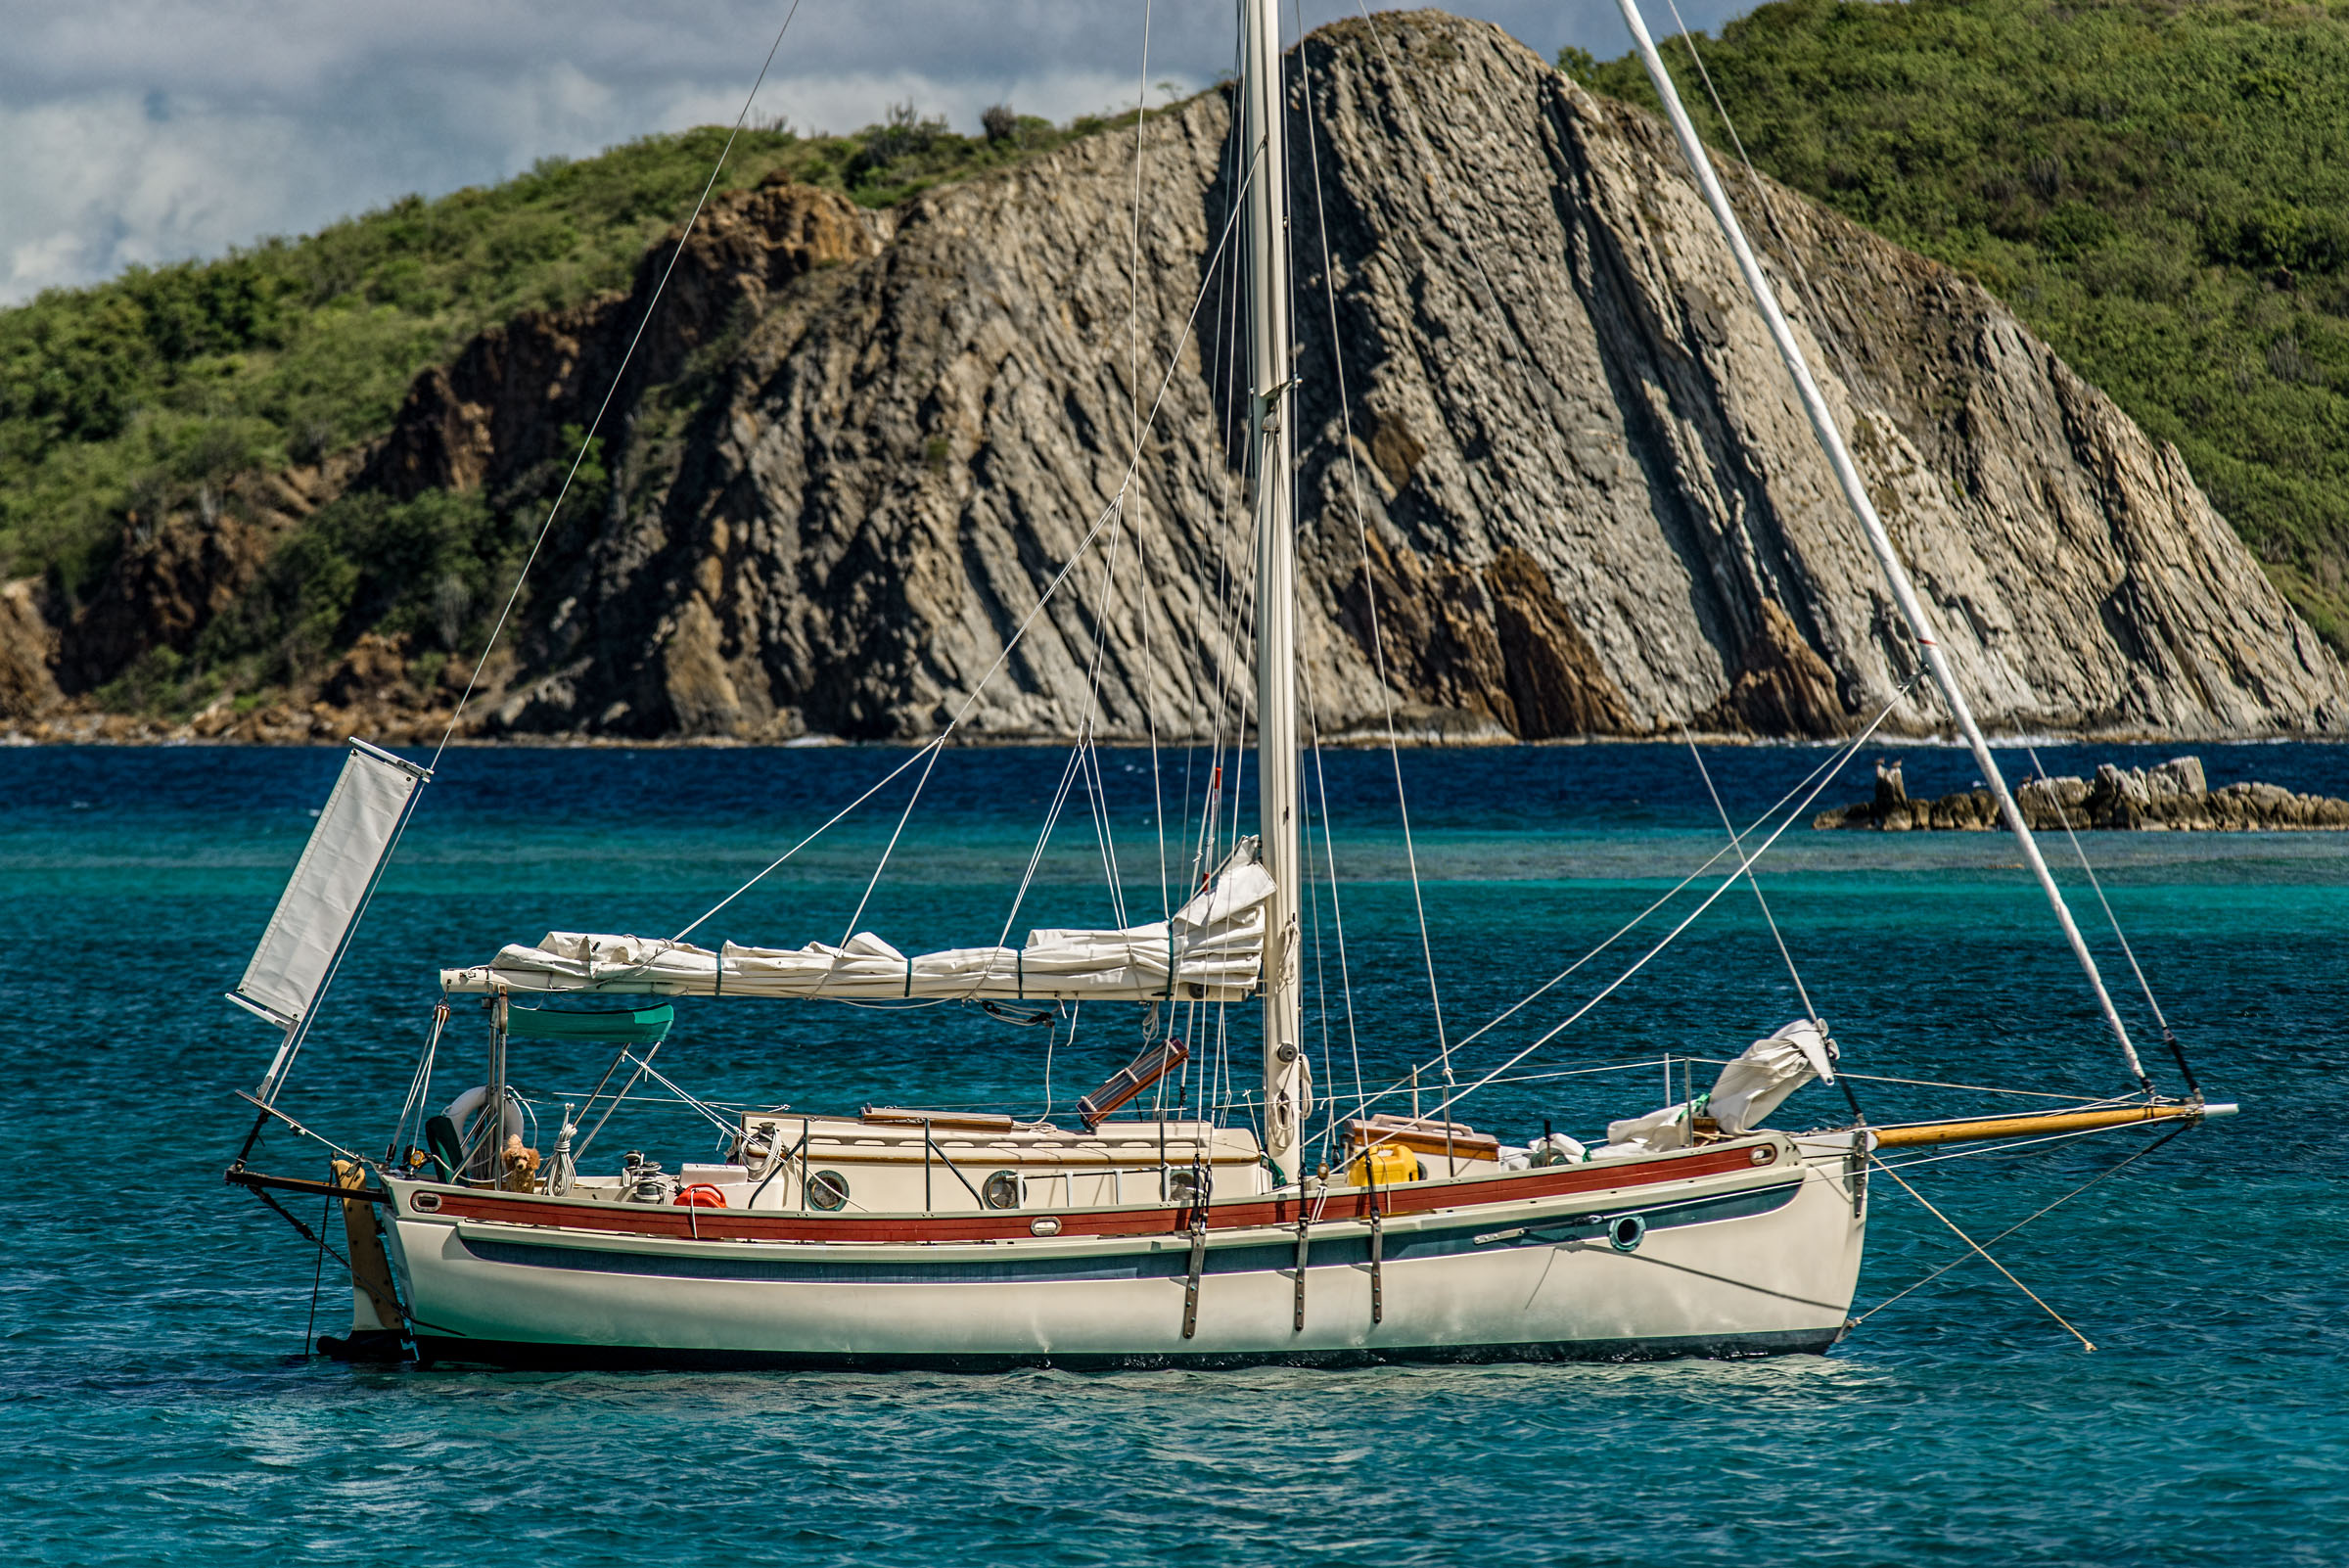 Sailboats In The Caribbean: Professional Photography Services